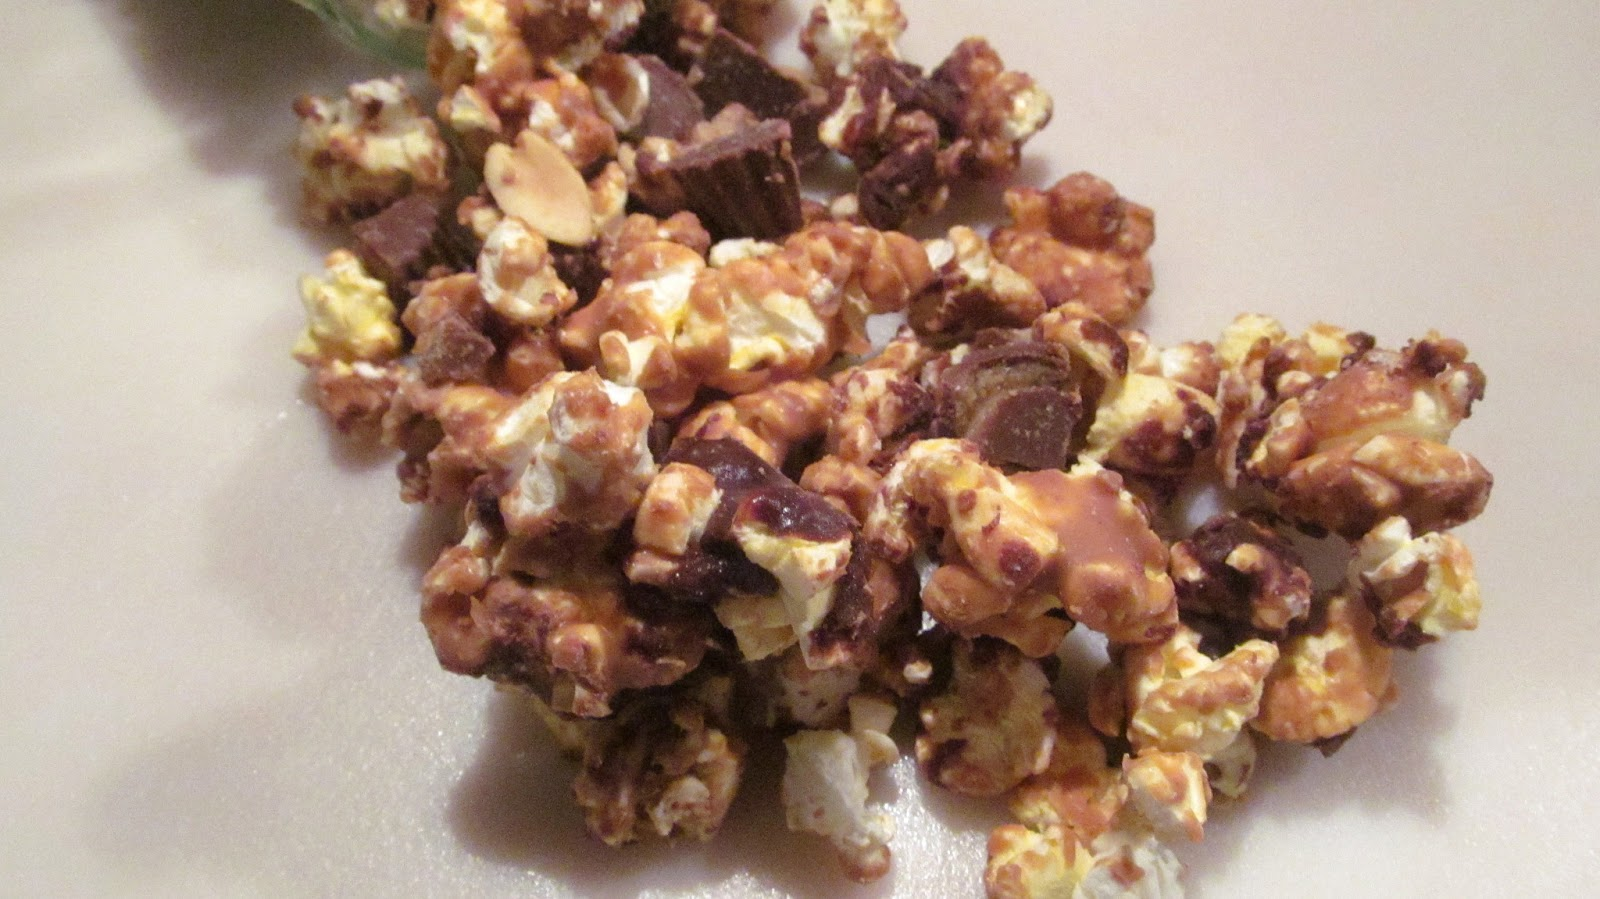 The Freshman Cook: Reese Cup Popcorn!